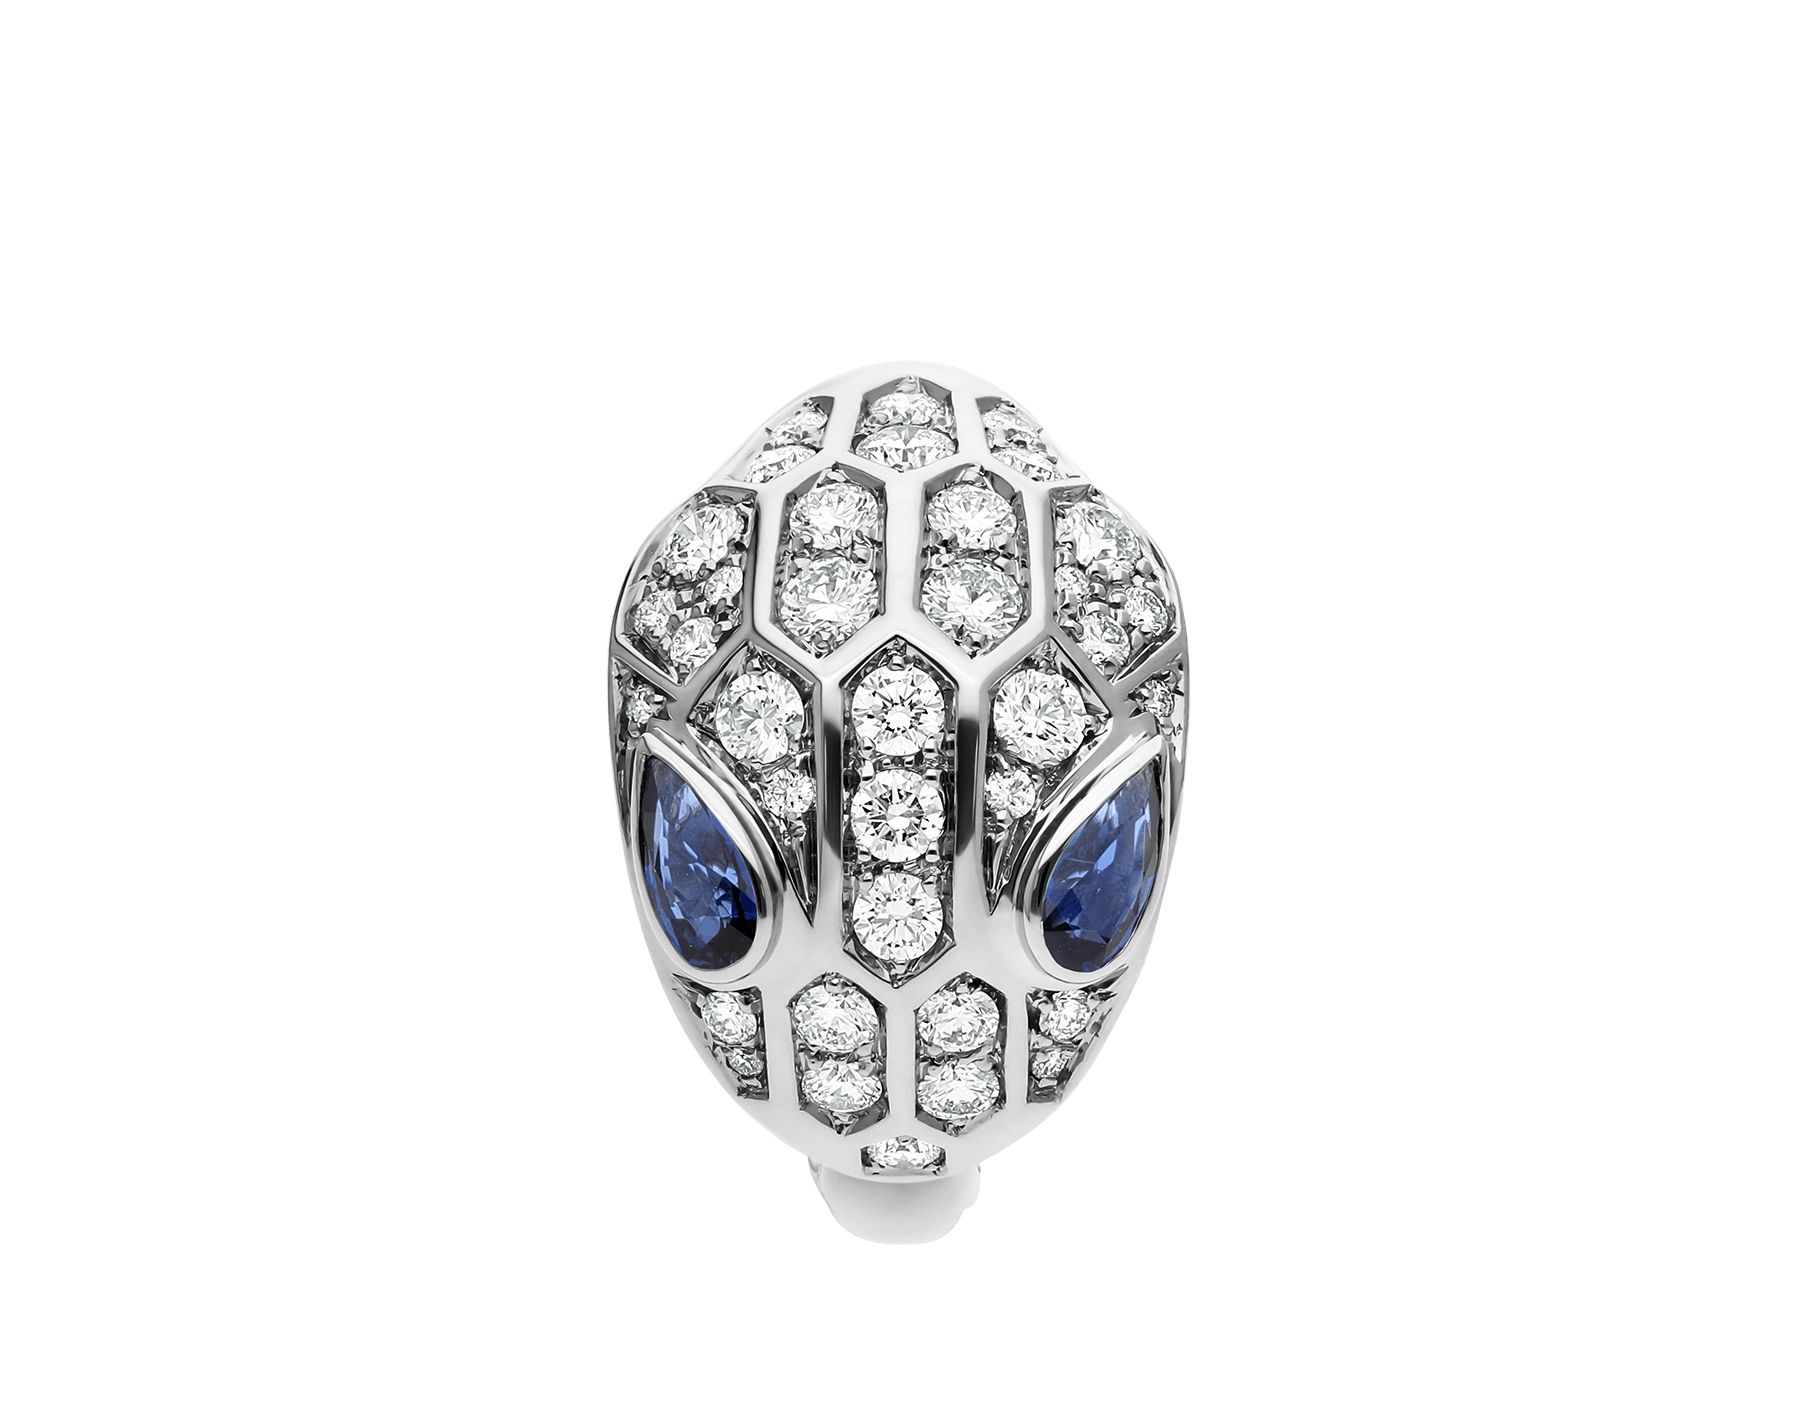 Serpenti ring in 18 kt white gold set with blue sapphire eyes (0.43 ct) and pavé diamonds (0.76 ct). AN857879 image 2